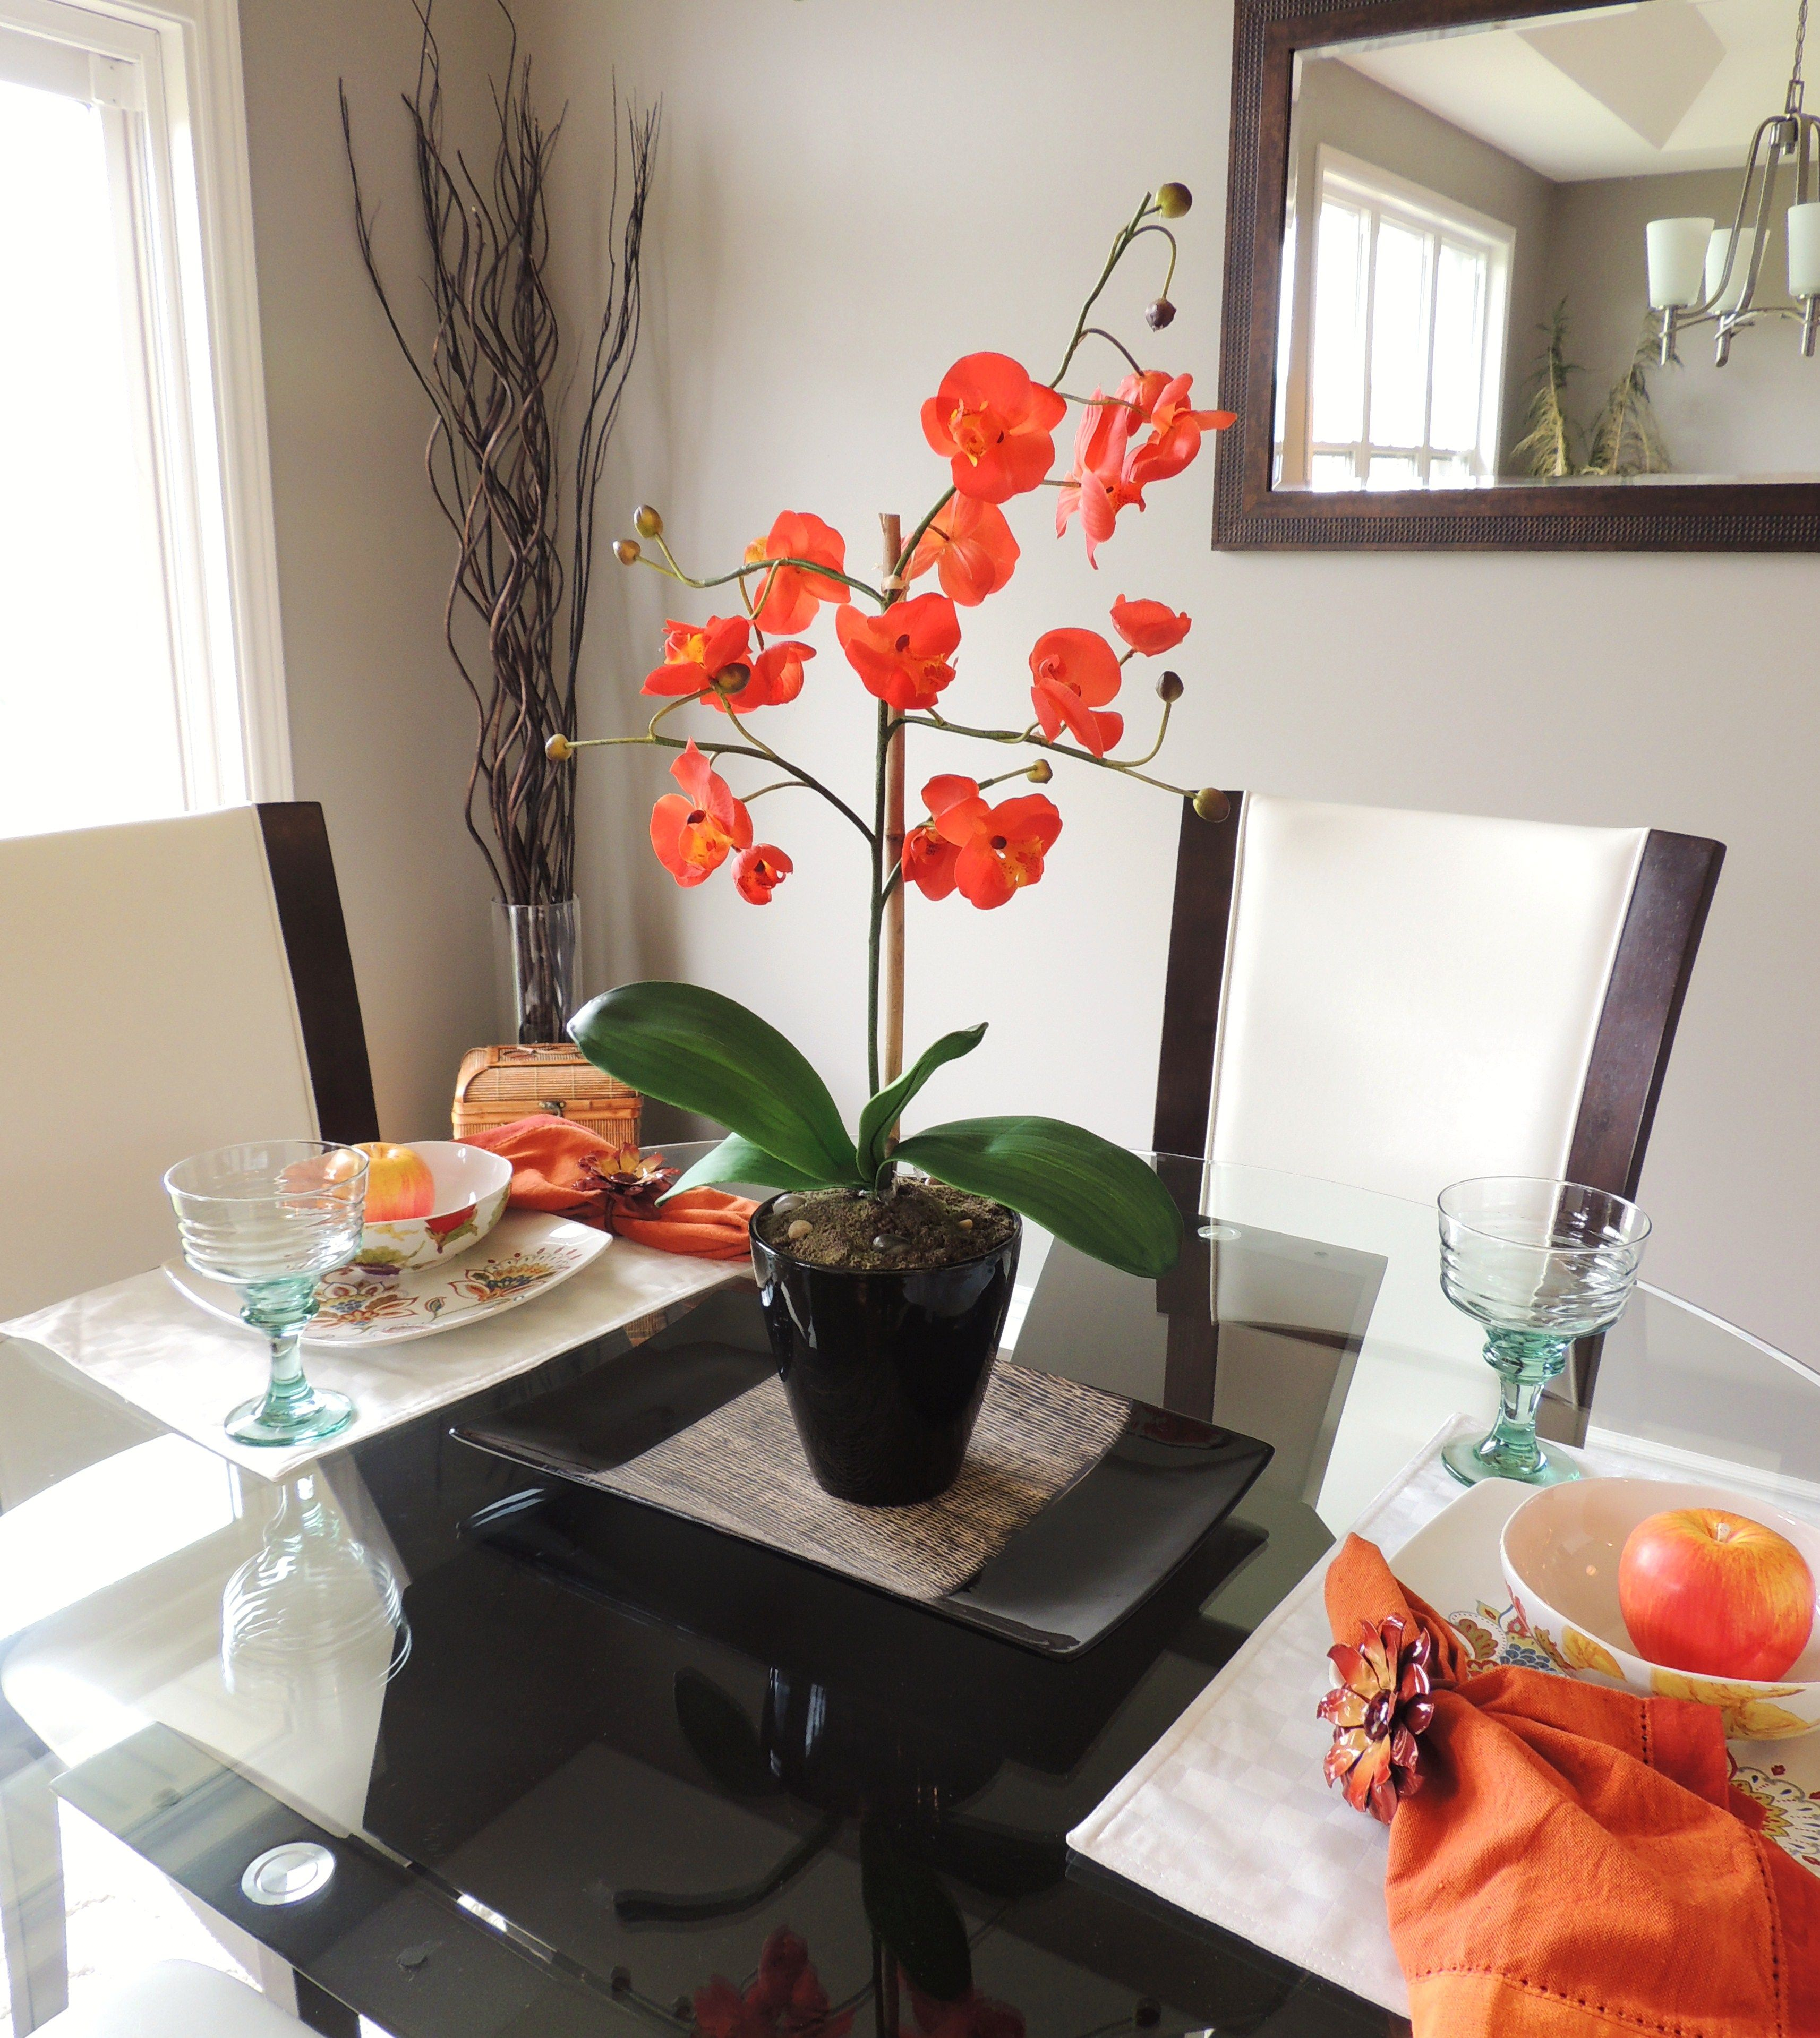 Setting A Table For Staging A Dining Room Table Setting Decor